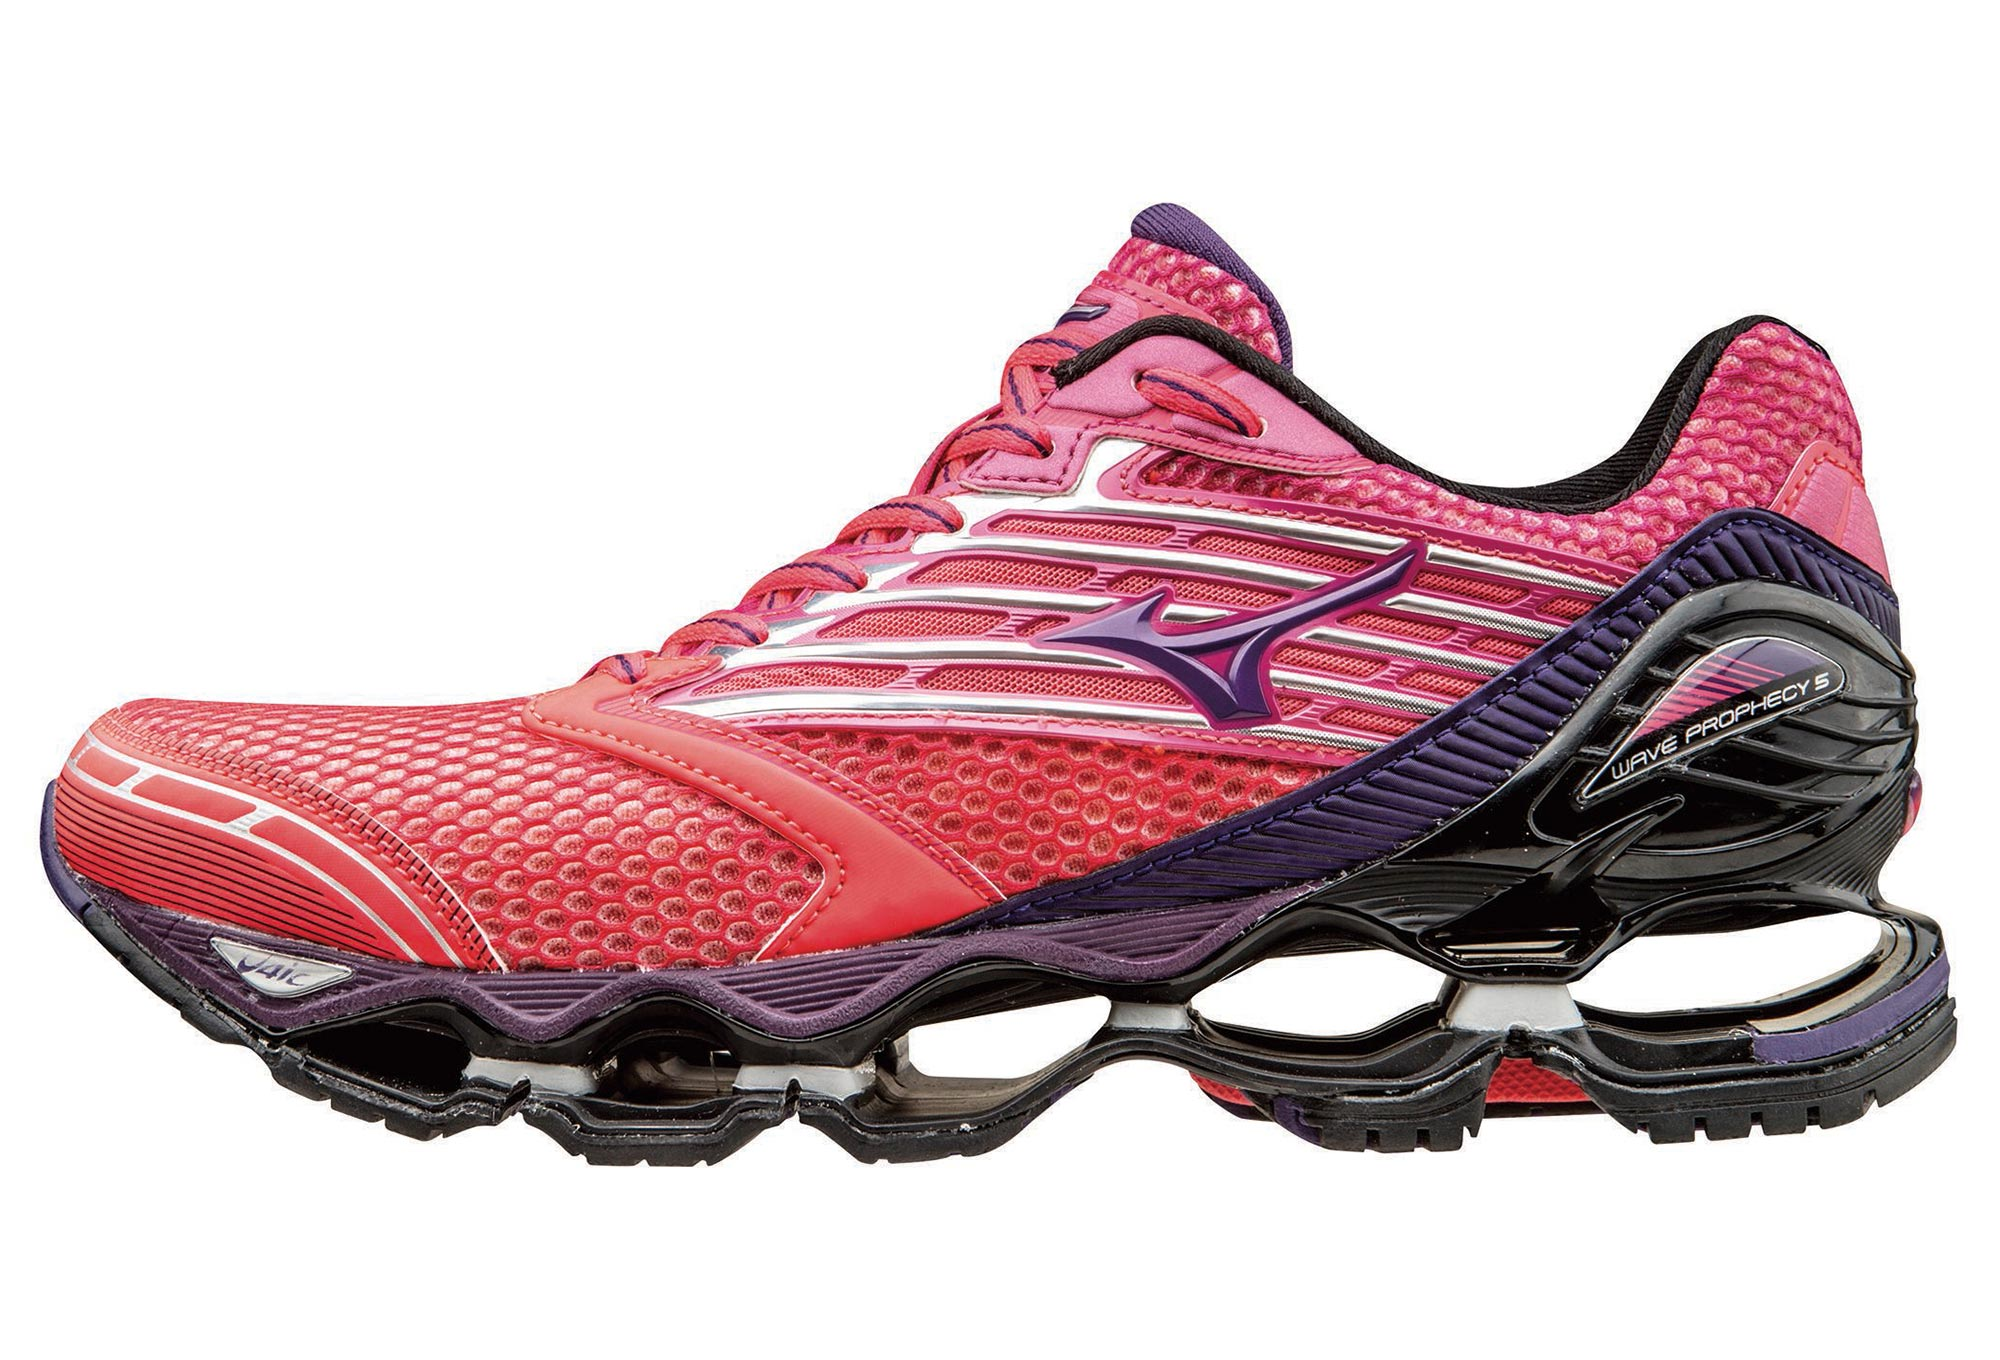 the best attitude 6e716 e7ced MIZUNO Shoes WAVE PROPHECY 5 Pink Purple Women   Alltricks.com